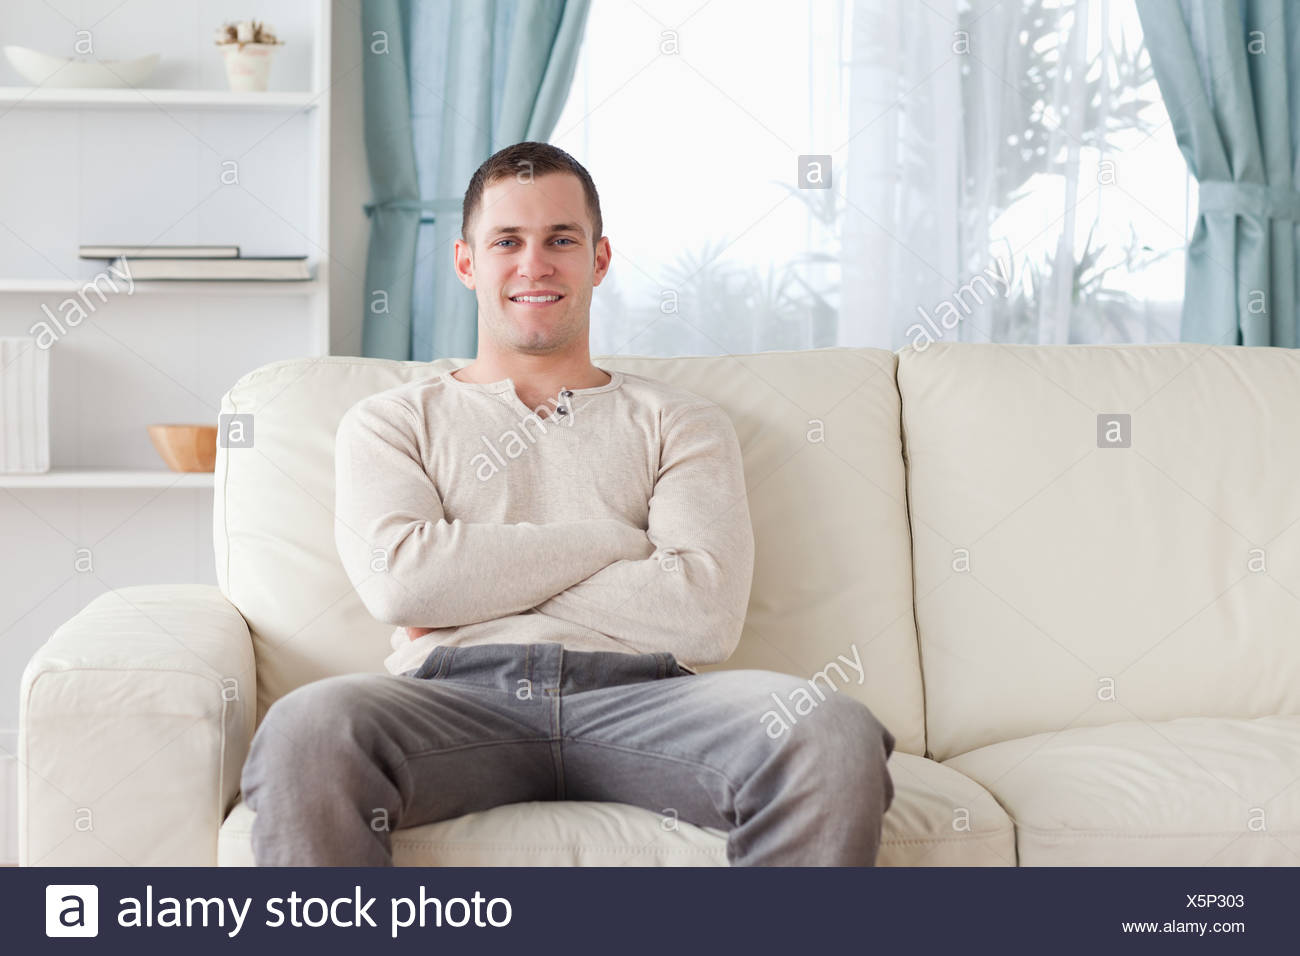 Man sitting on a couch Stock Photo